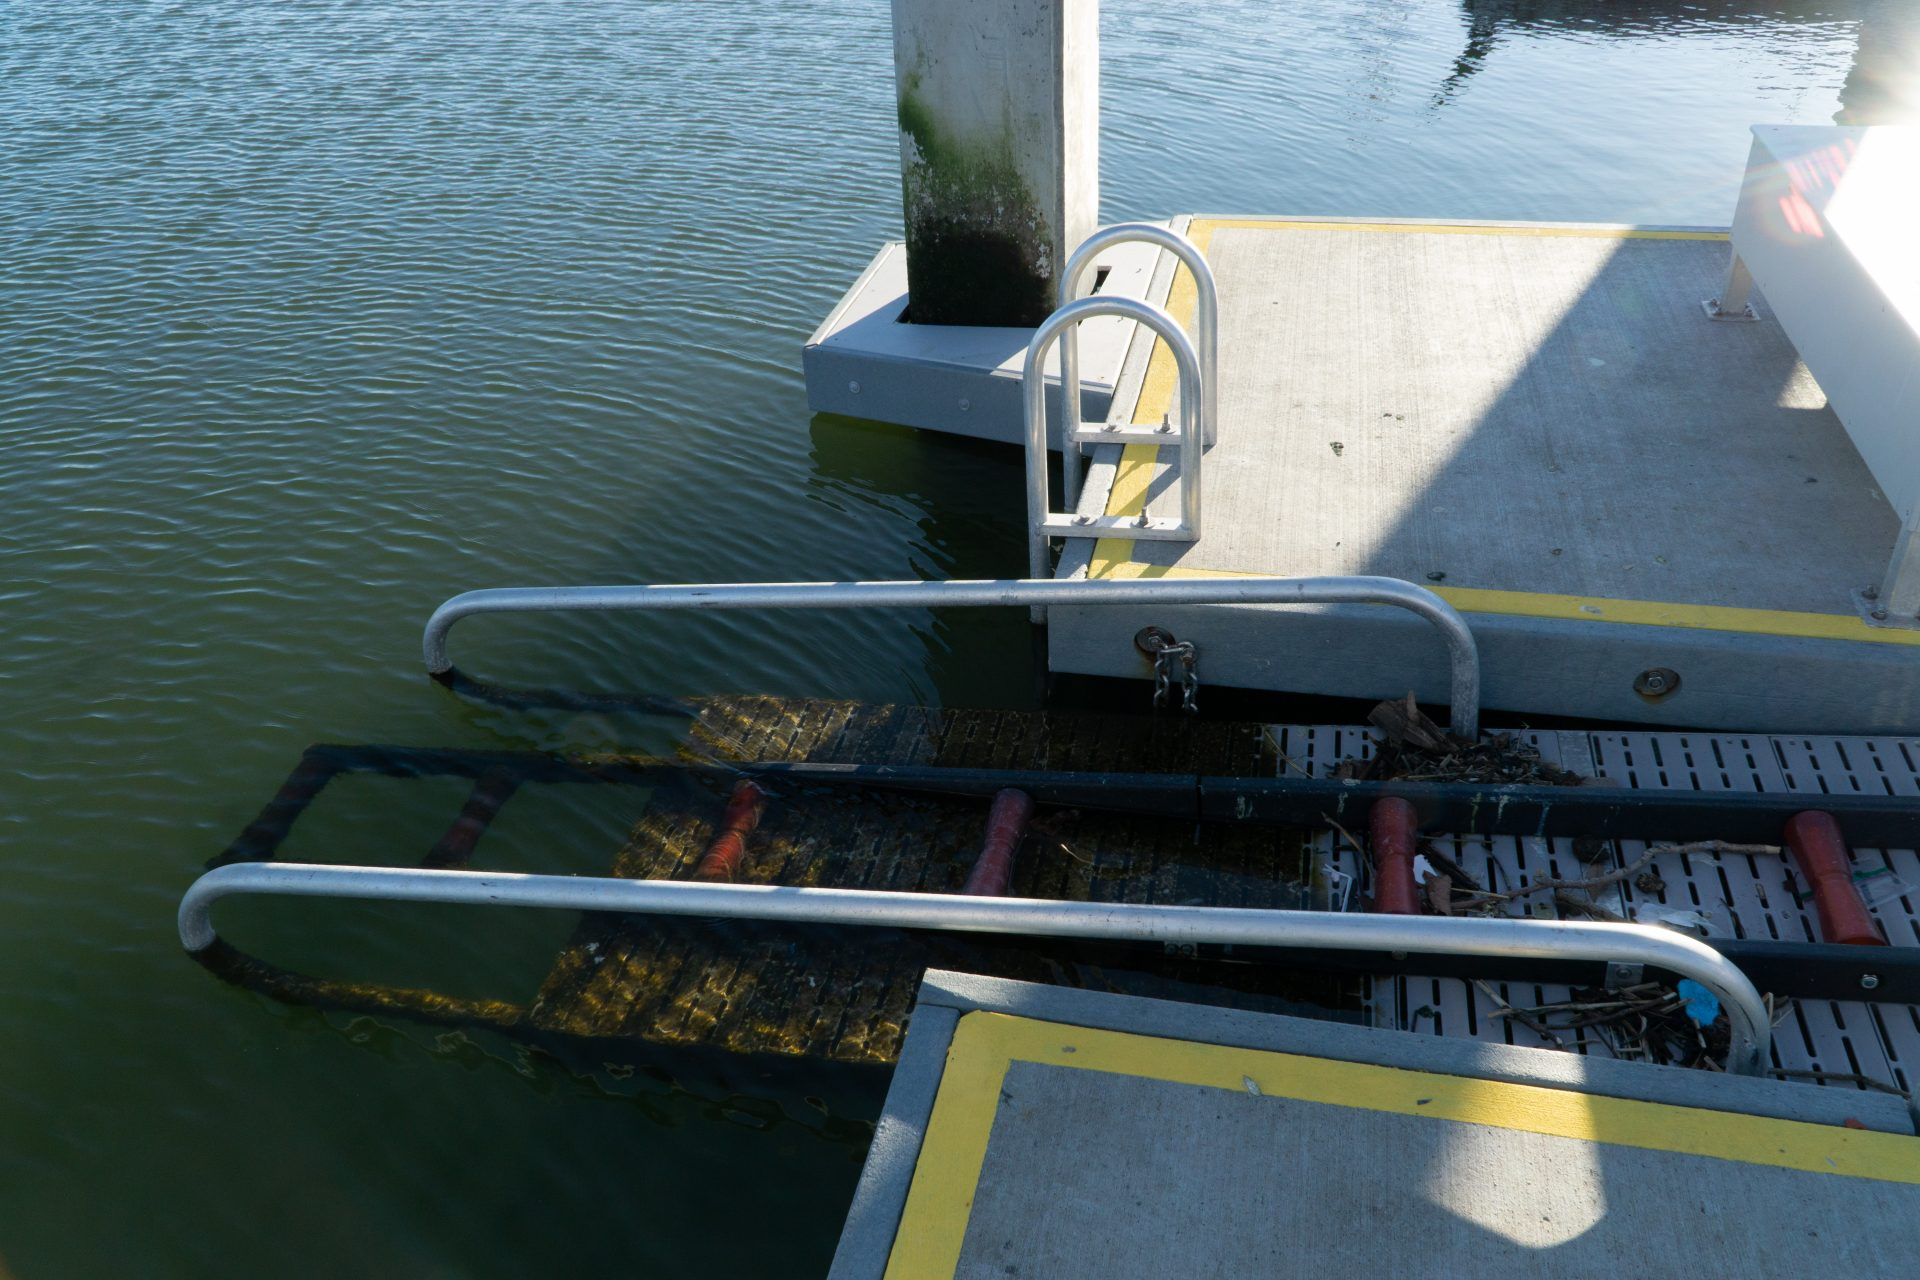 detail of boat launch's submerged end